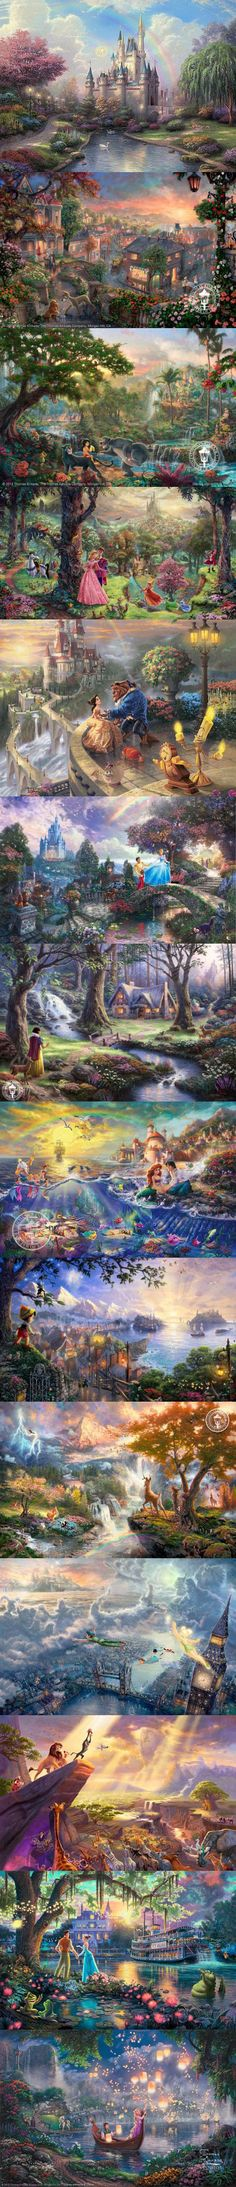 "Thomas Kinkade ""Disney Dreams"" collection: Thomas Kinkade ""Disney Dreams"" collection"